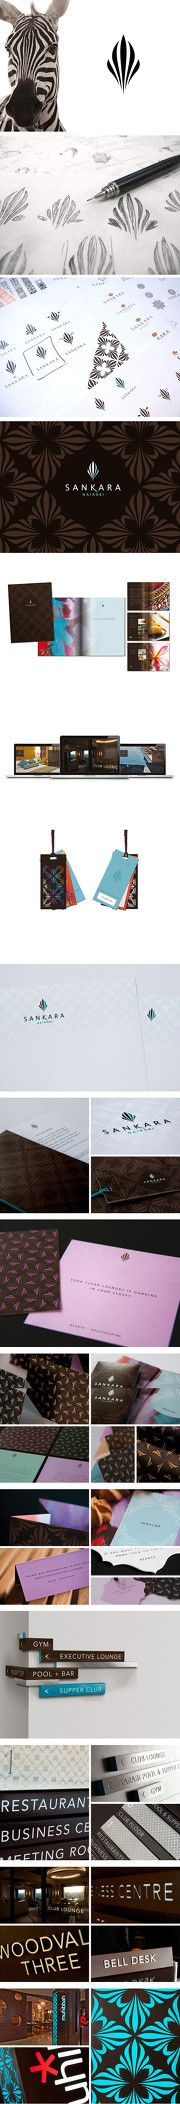 Sankara Hotel / Branding / Identity / Logo / Process / sketch / inspiration / zebra / stripes / pattern / stationery / business card / signs This is a fantastic example of taking design from nature! It's an elegant design that you can do so much with. Corporate Design, Brand Identity Design, Graphic Design Typography, Corporate Identity, Brand Design, Hotel Branding, Logo Branding, Branding Agency, Flyer Inspiration